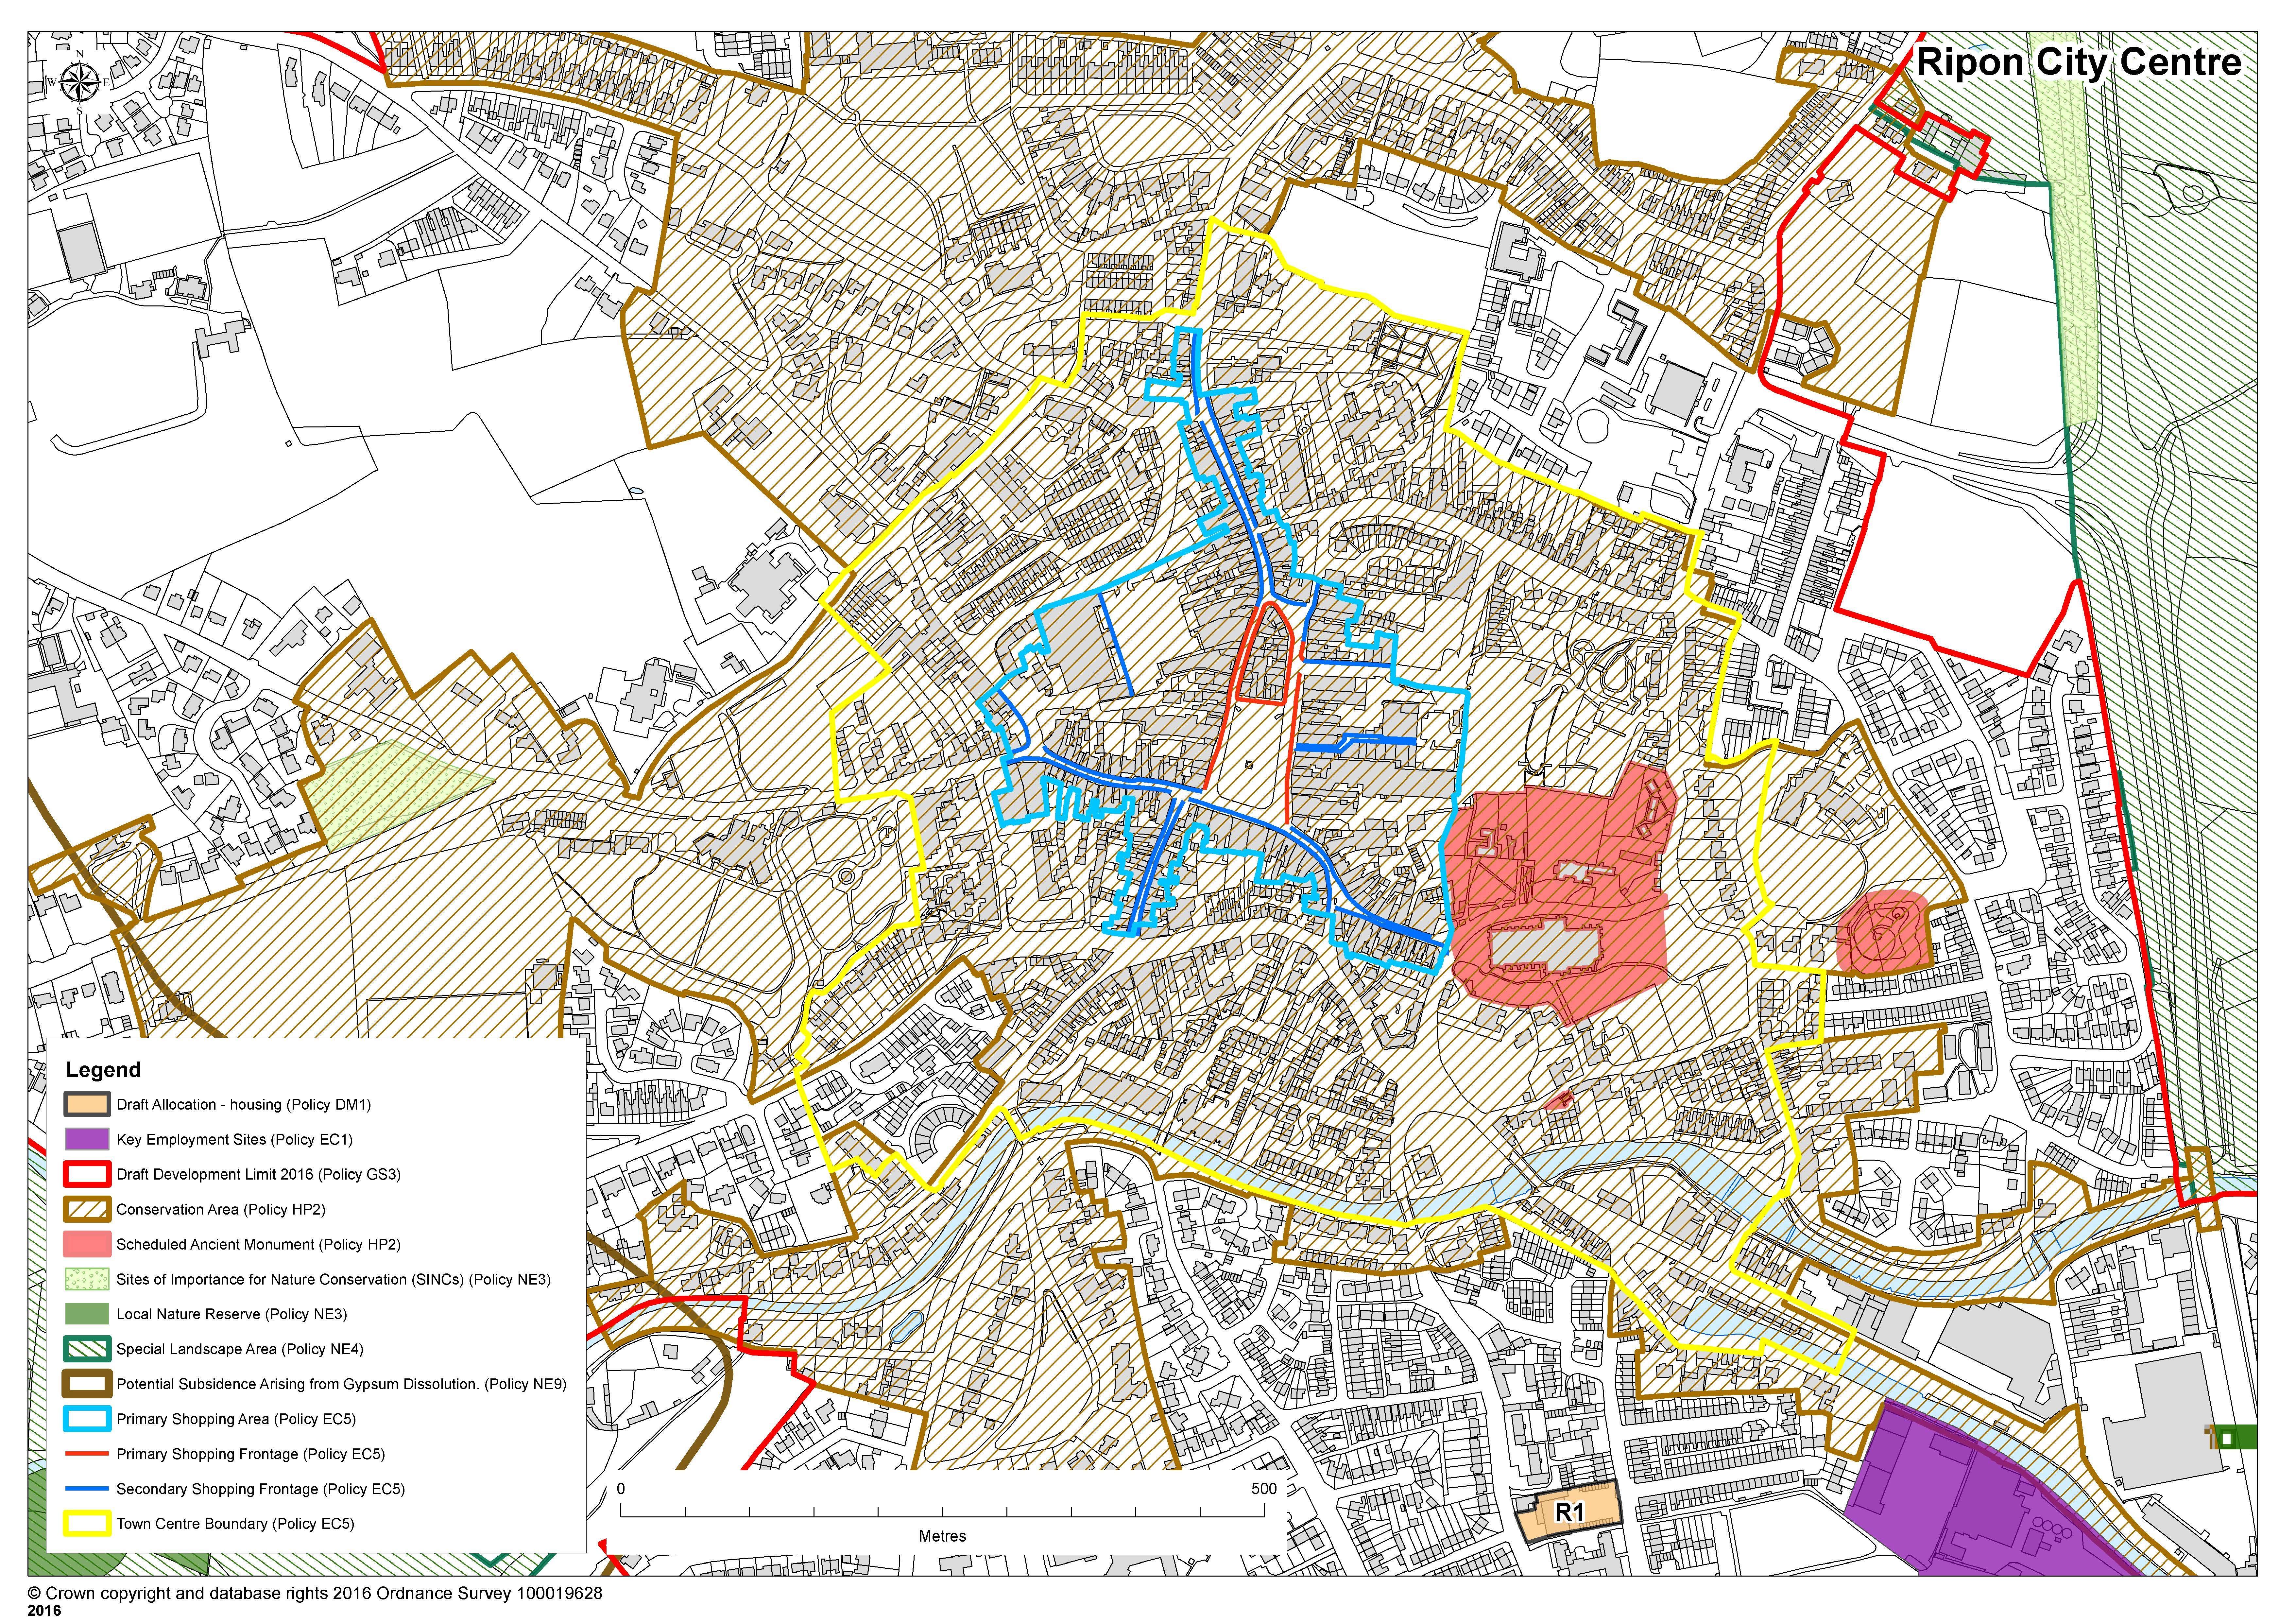 Map of Ripon City Centre City Centre Map on